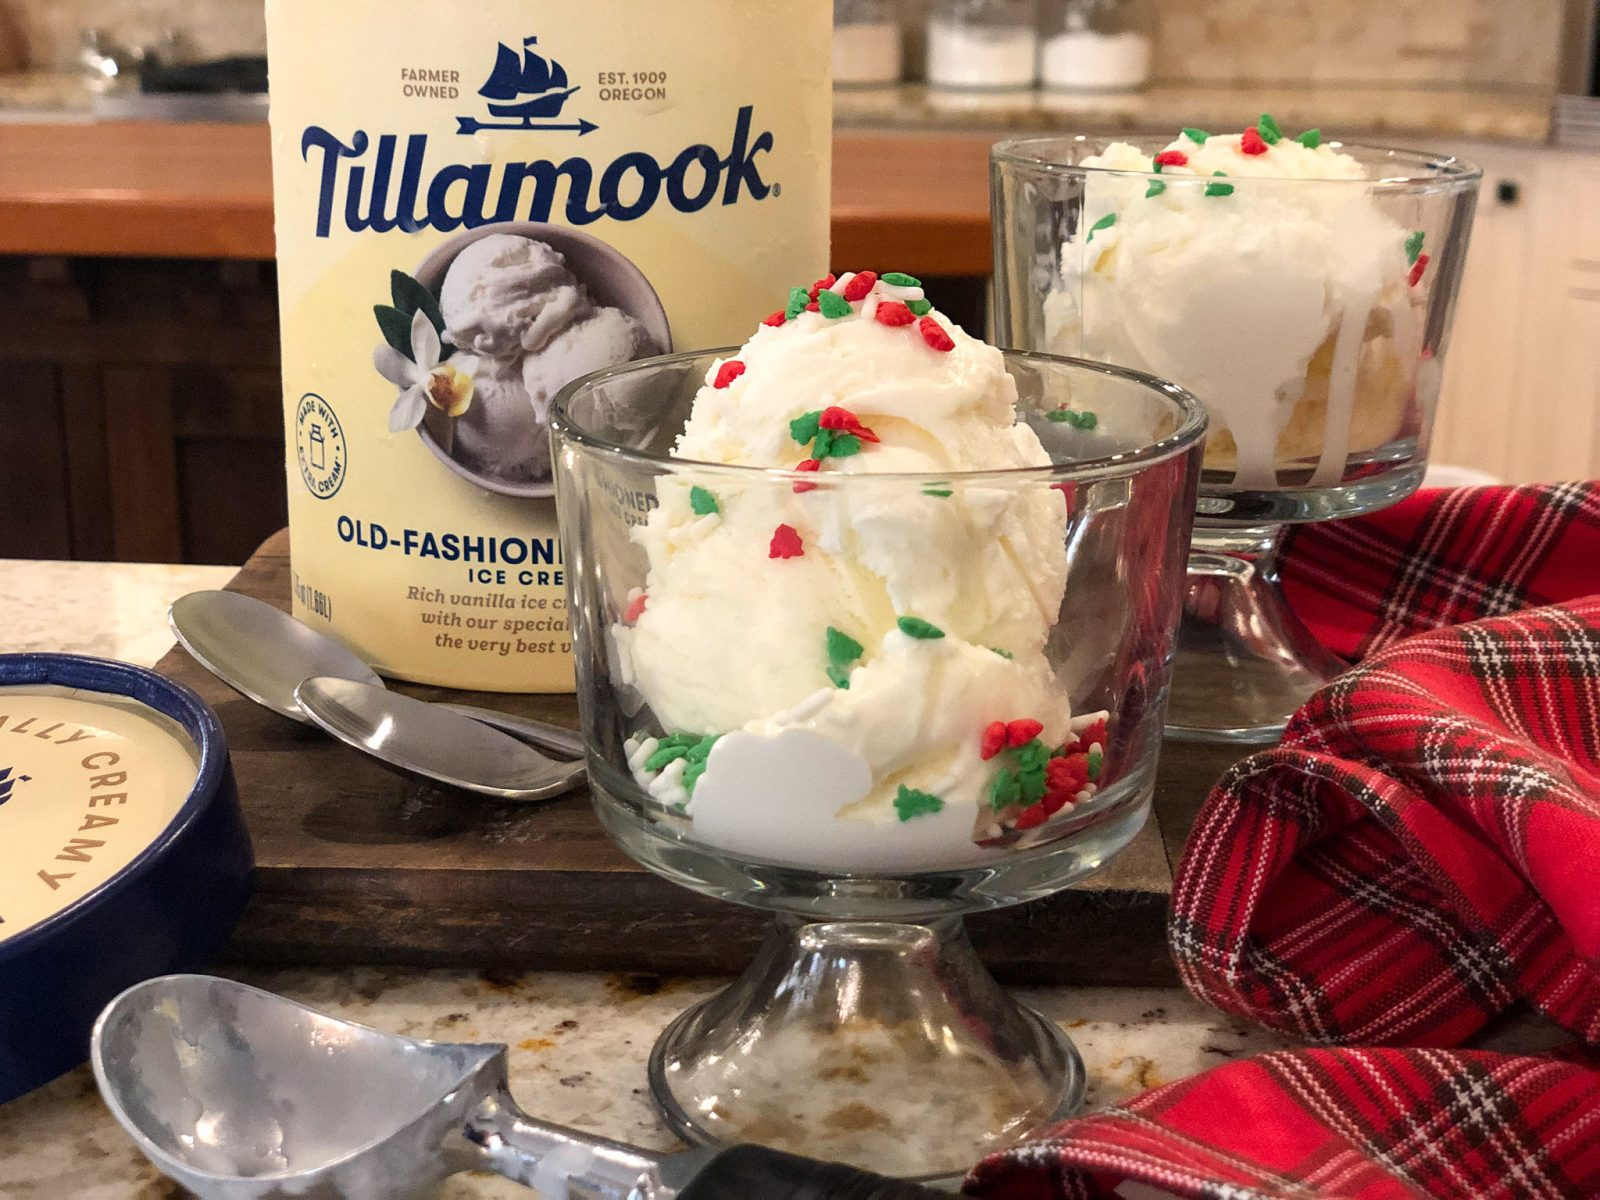 Holidays Made Easy With The Great Taste Of Tillamook - Save At Publix on I Heart Publix 1